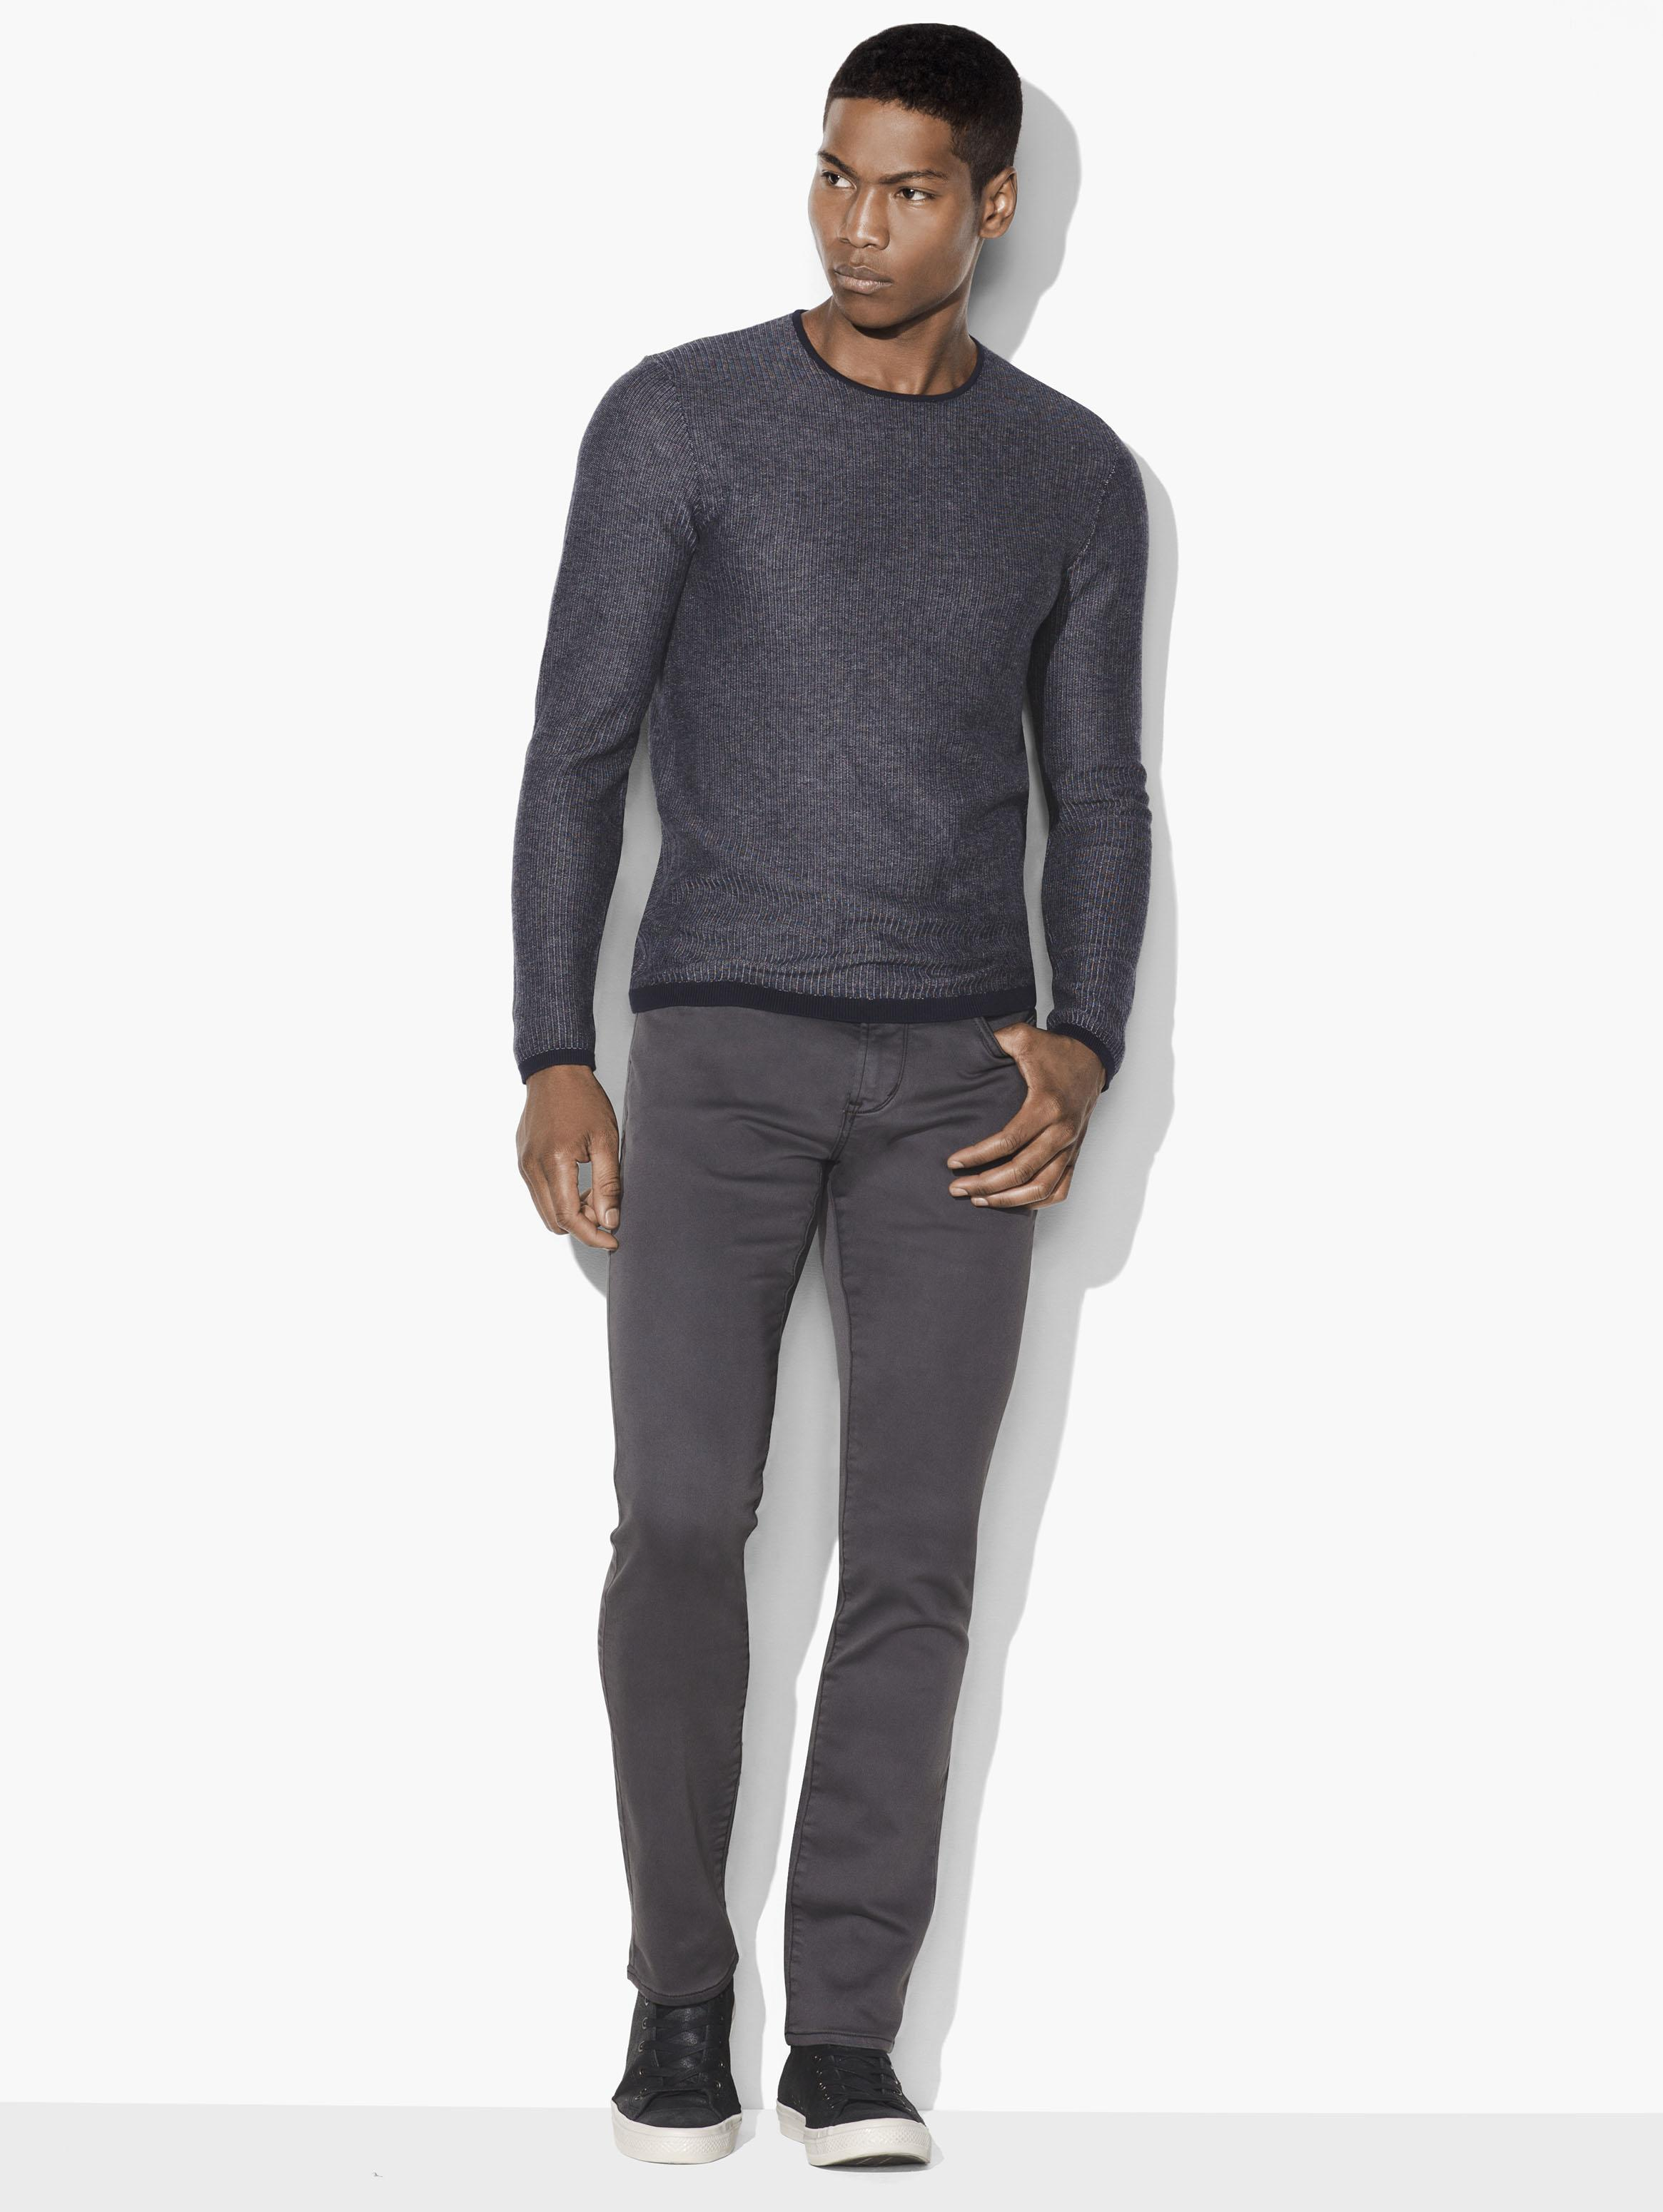 LONG SLEEVED CREW NECK WITH VERTICAL STRIPE JACQUA